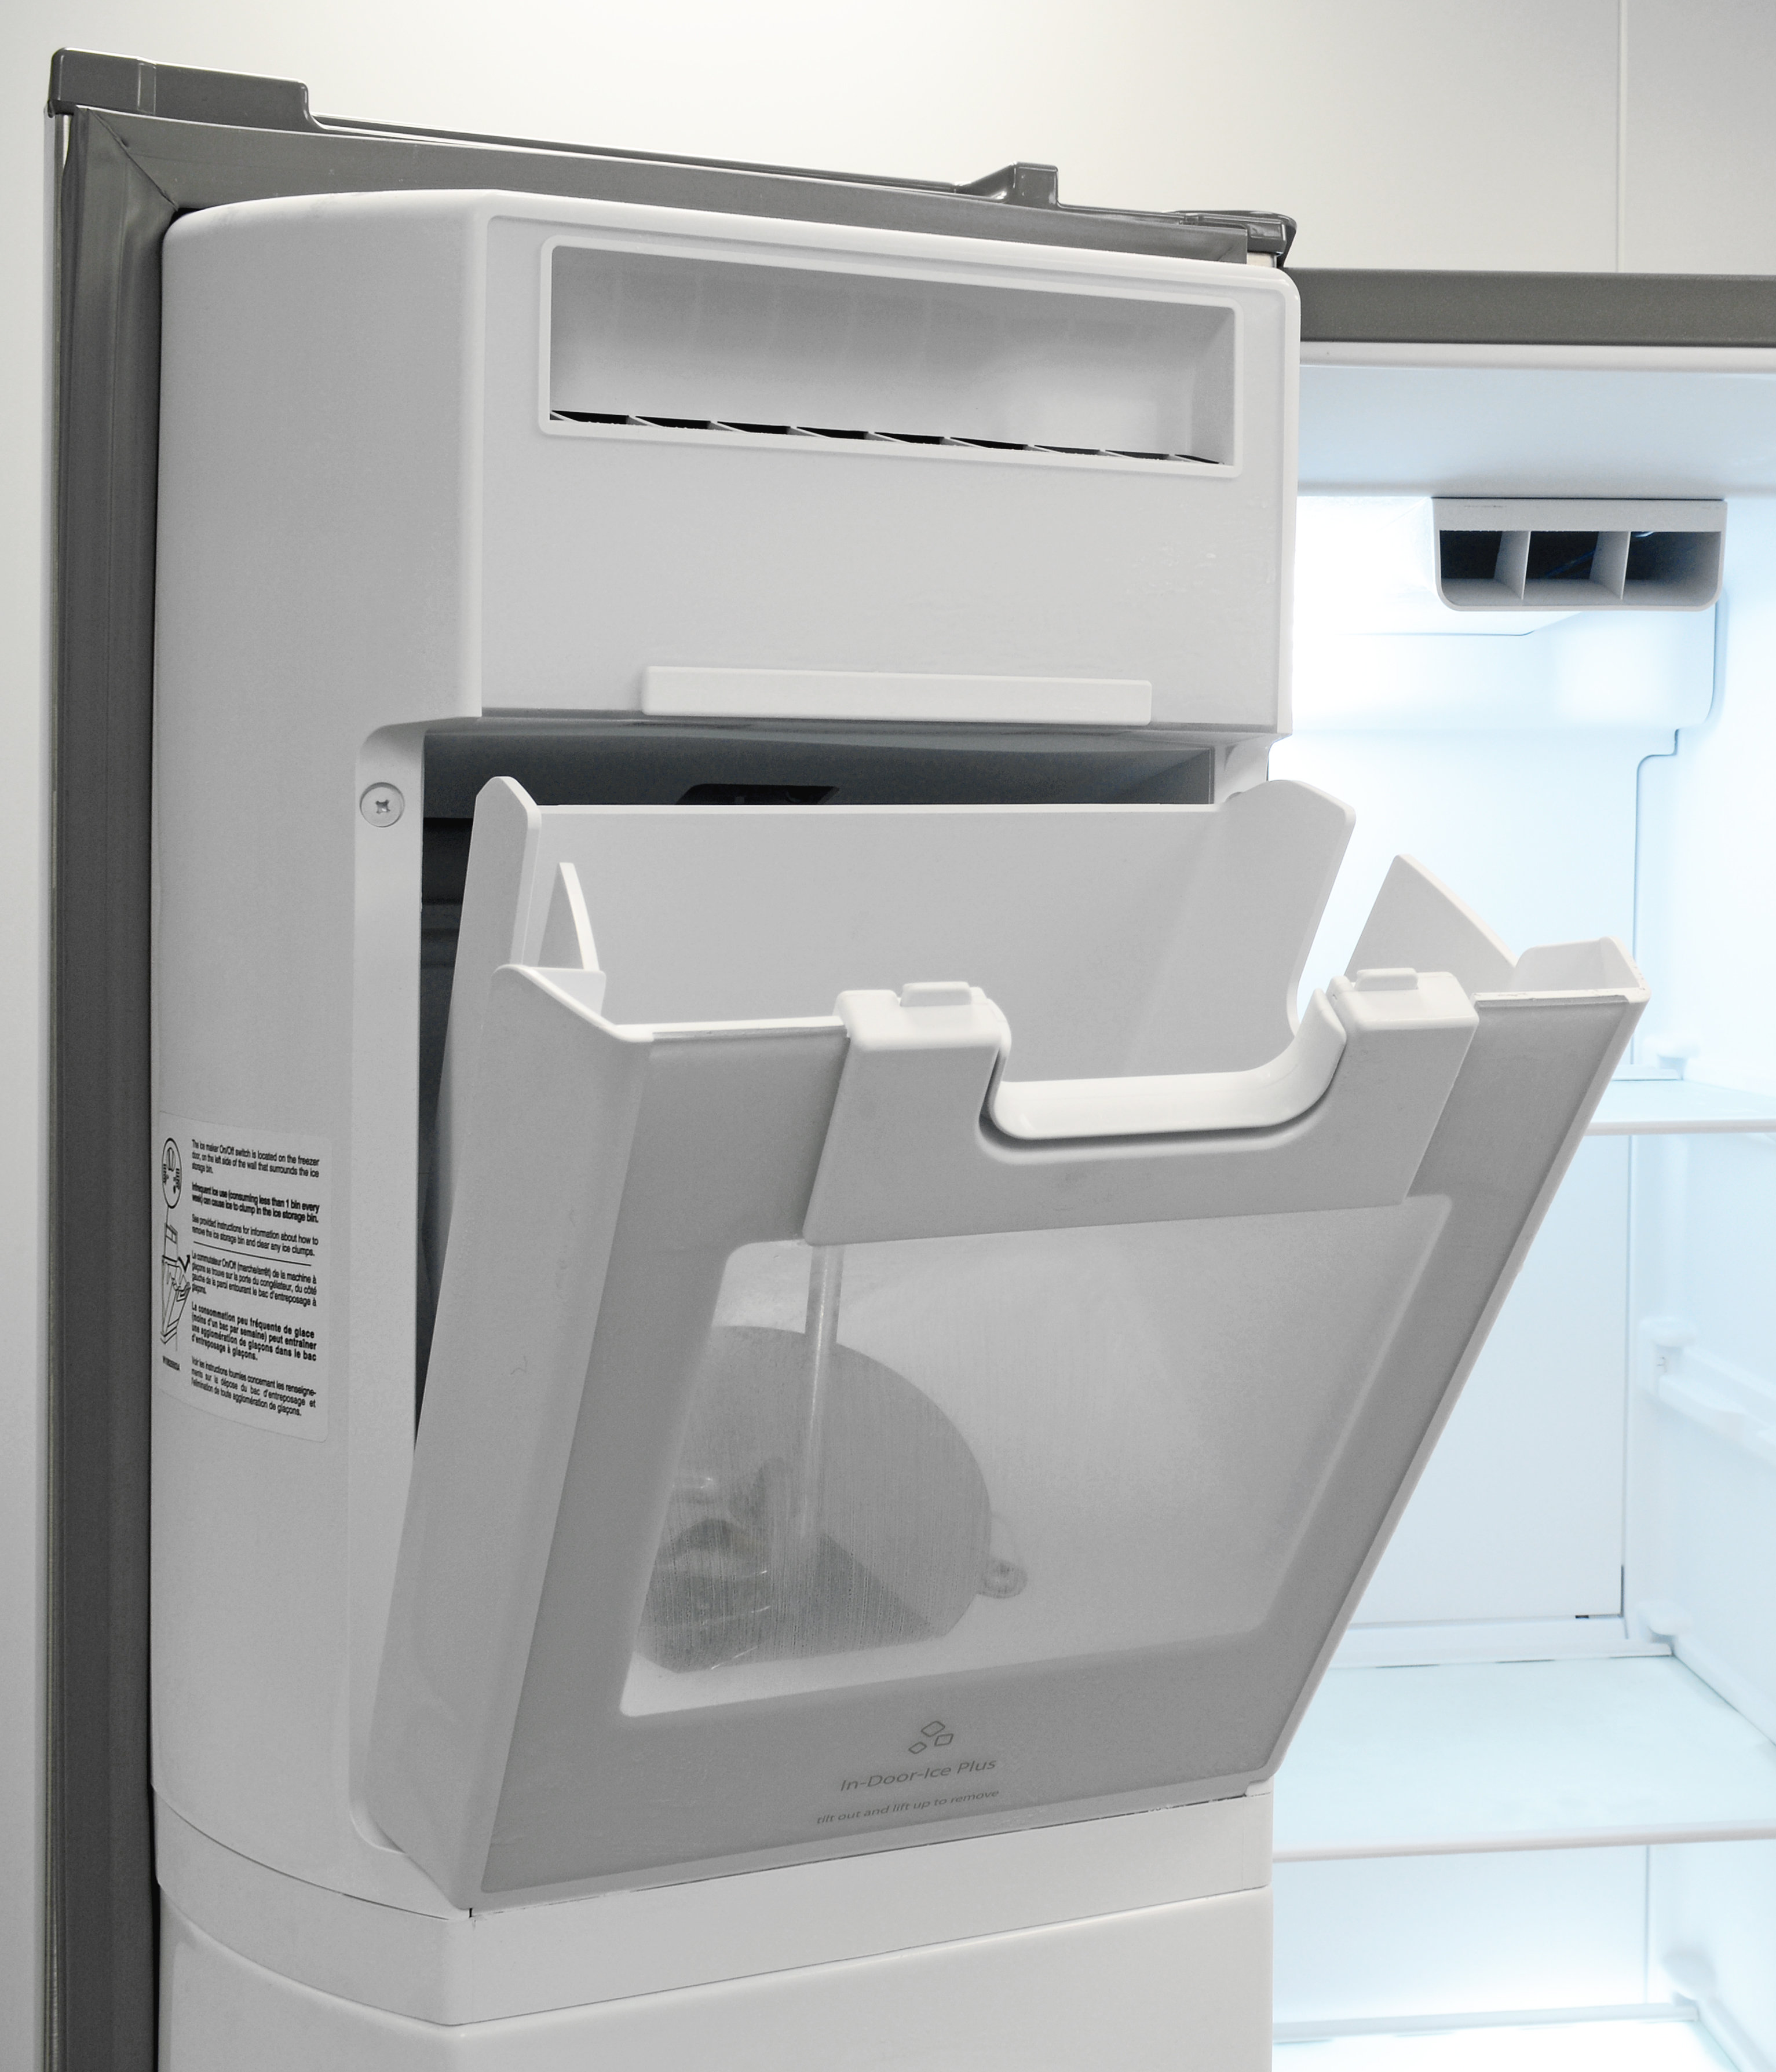 The Whirlpool WRS571CIDM's door-mounted icemaker tilts forward for easy cube access.